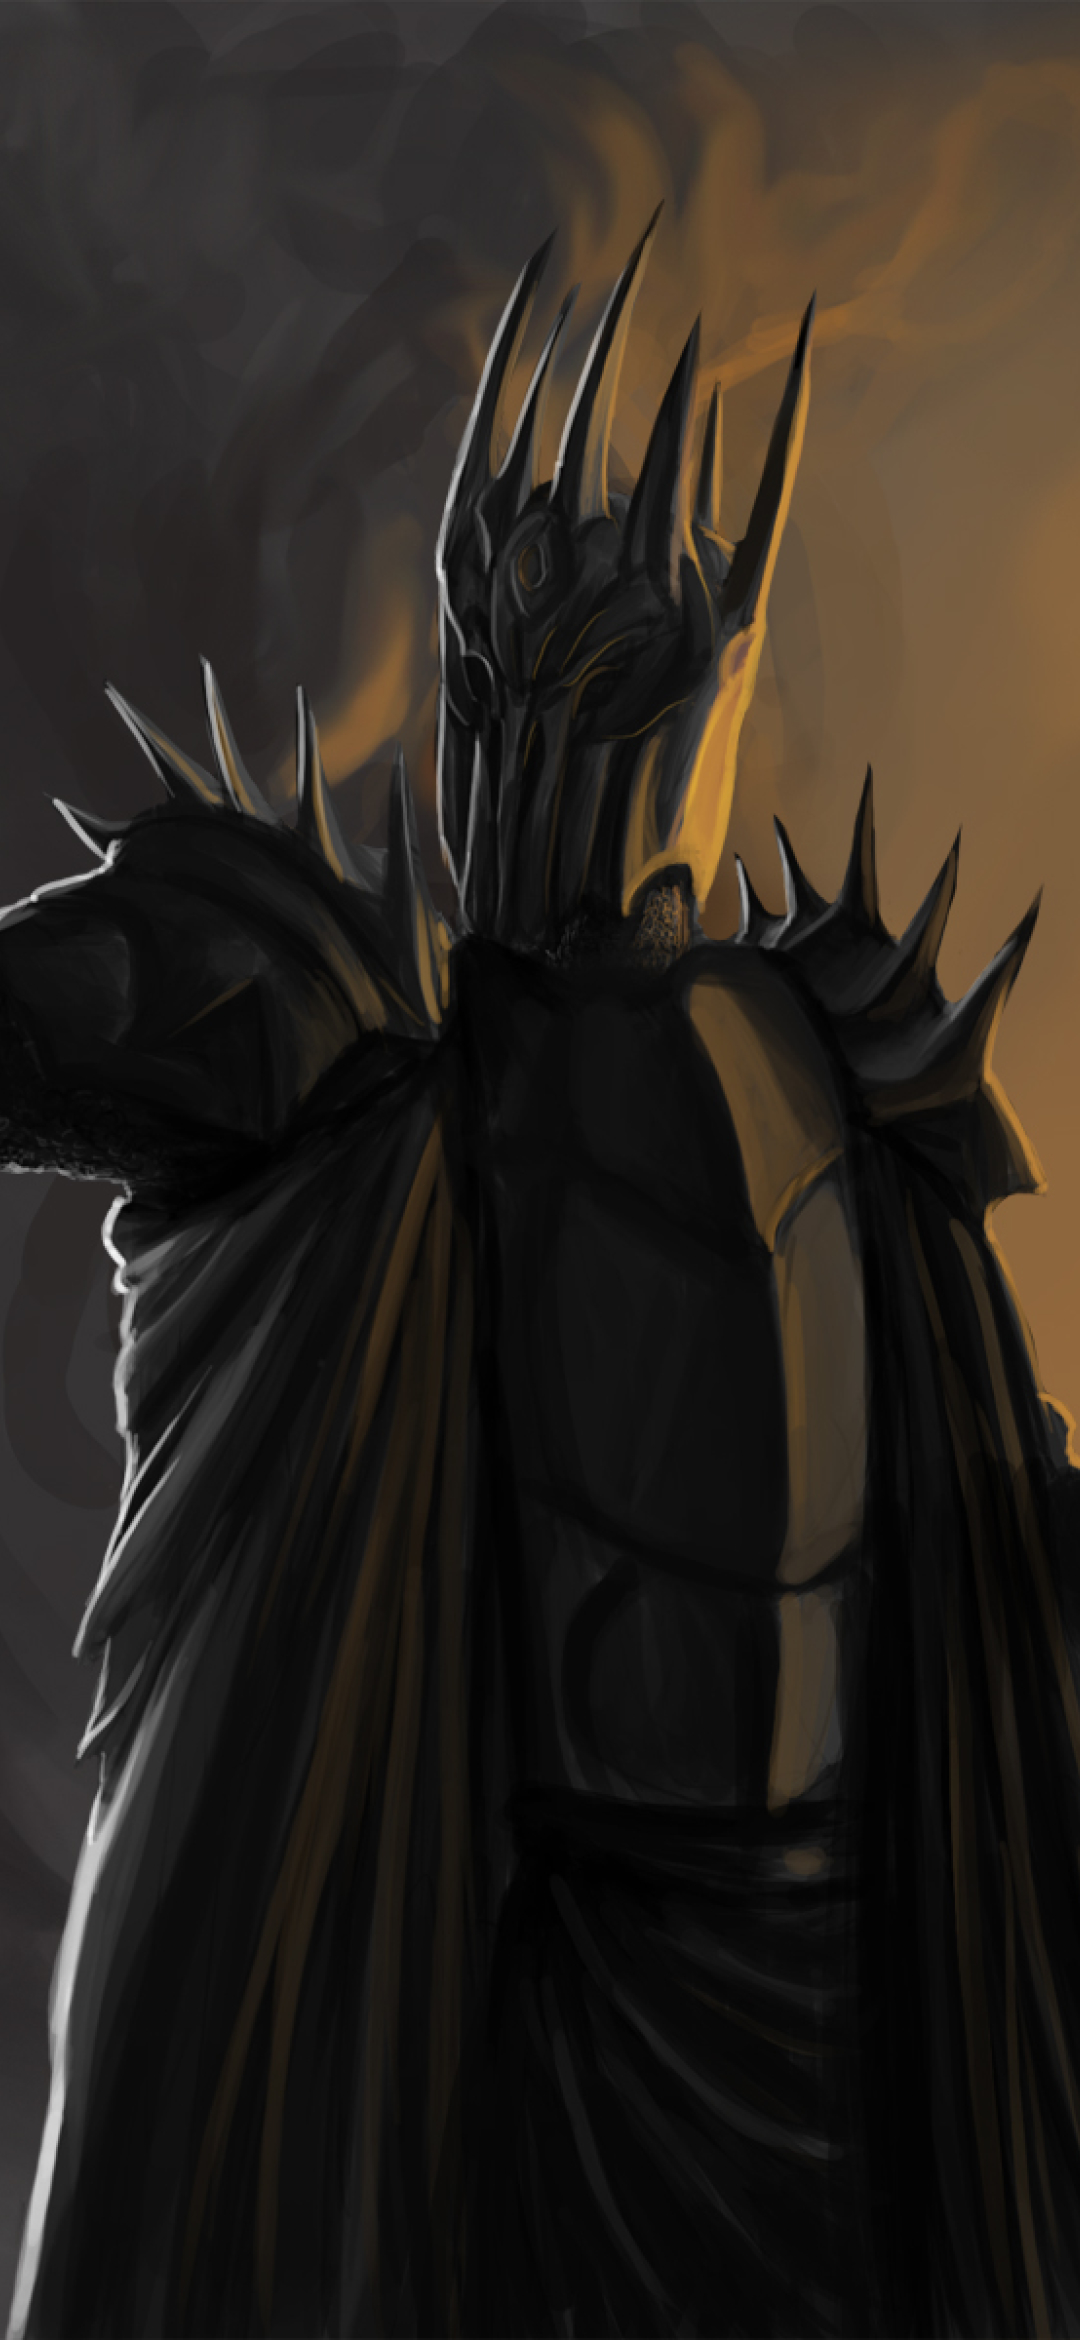 1080x2340 Sauron Lord Of The Rings 1080x2340 Resolution Wallpaper